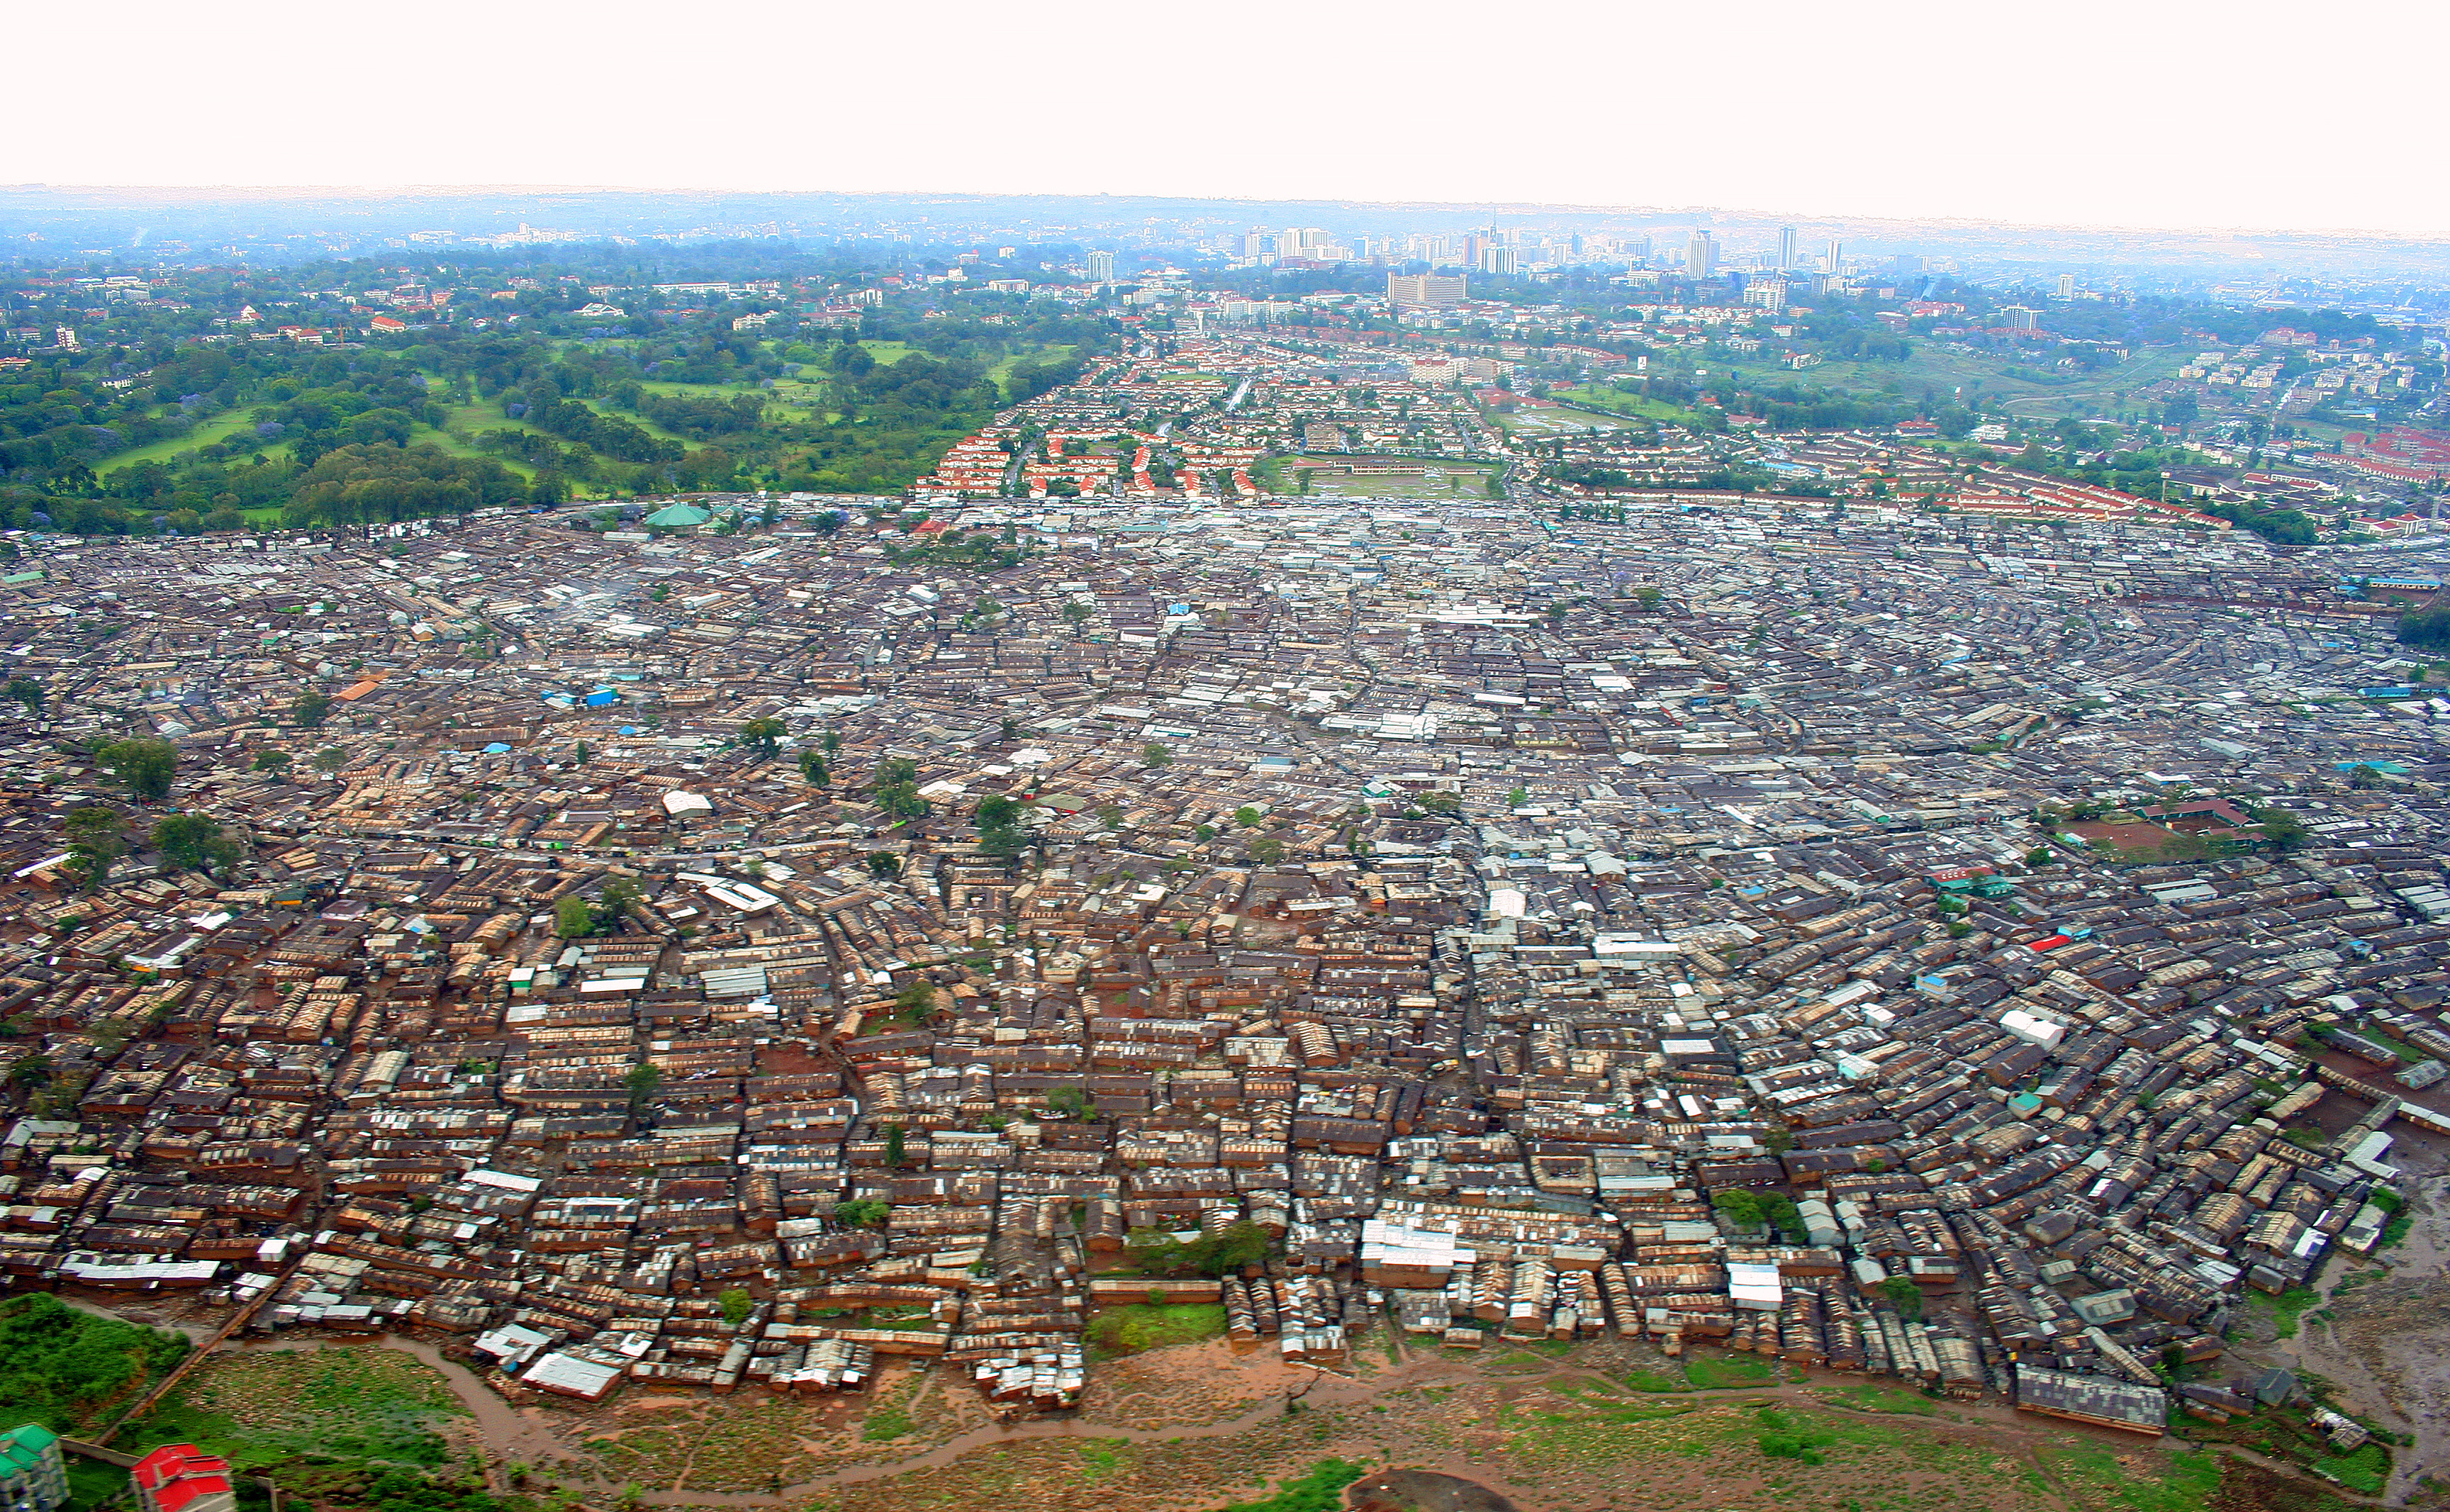 https://i2.wp.com/upload.wikimedia.org/wikipedia/commons/a/a2/Nairobi_Kibera_04.JPG